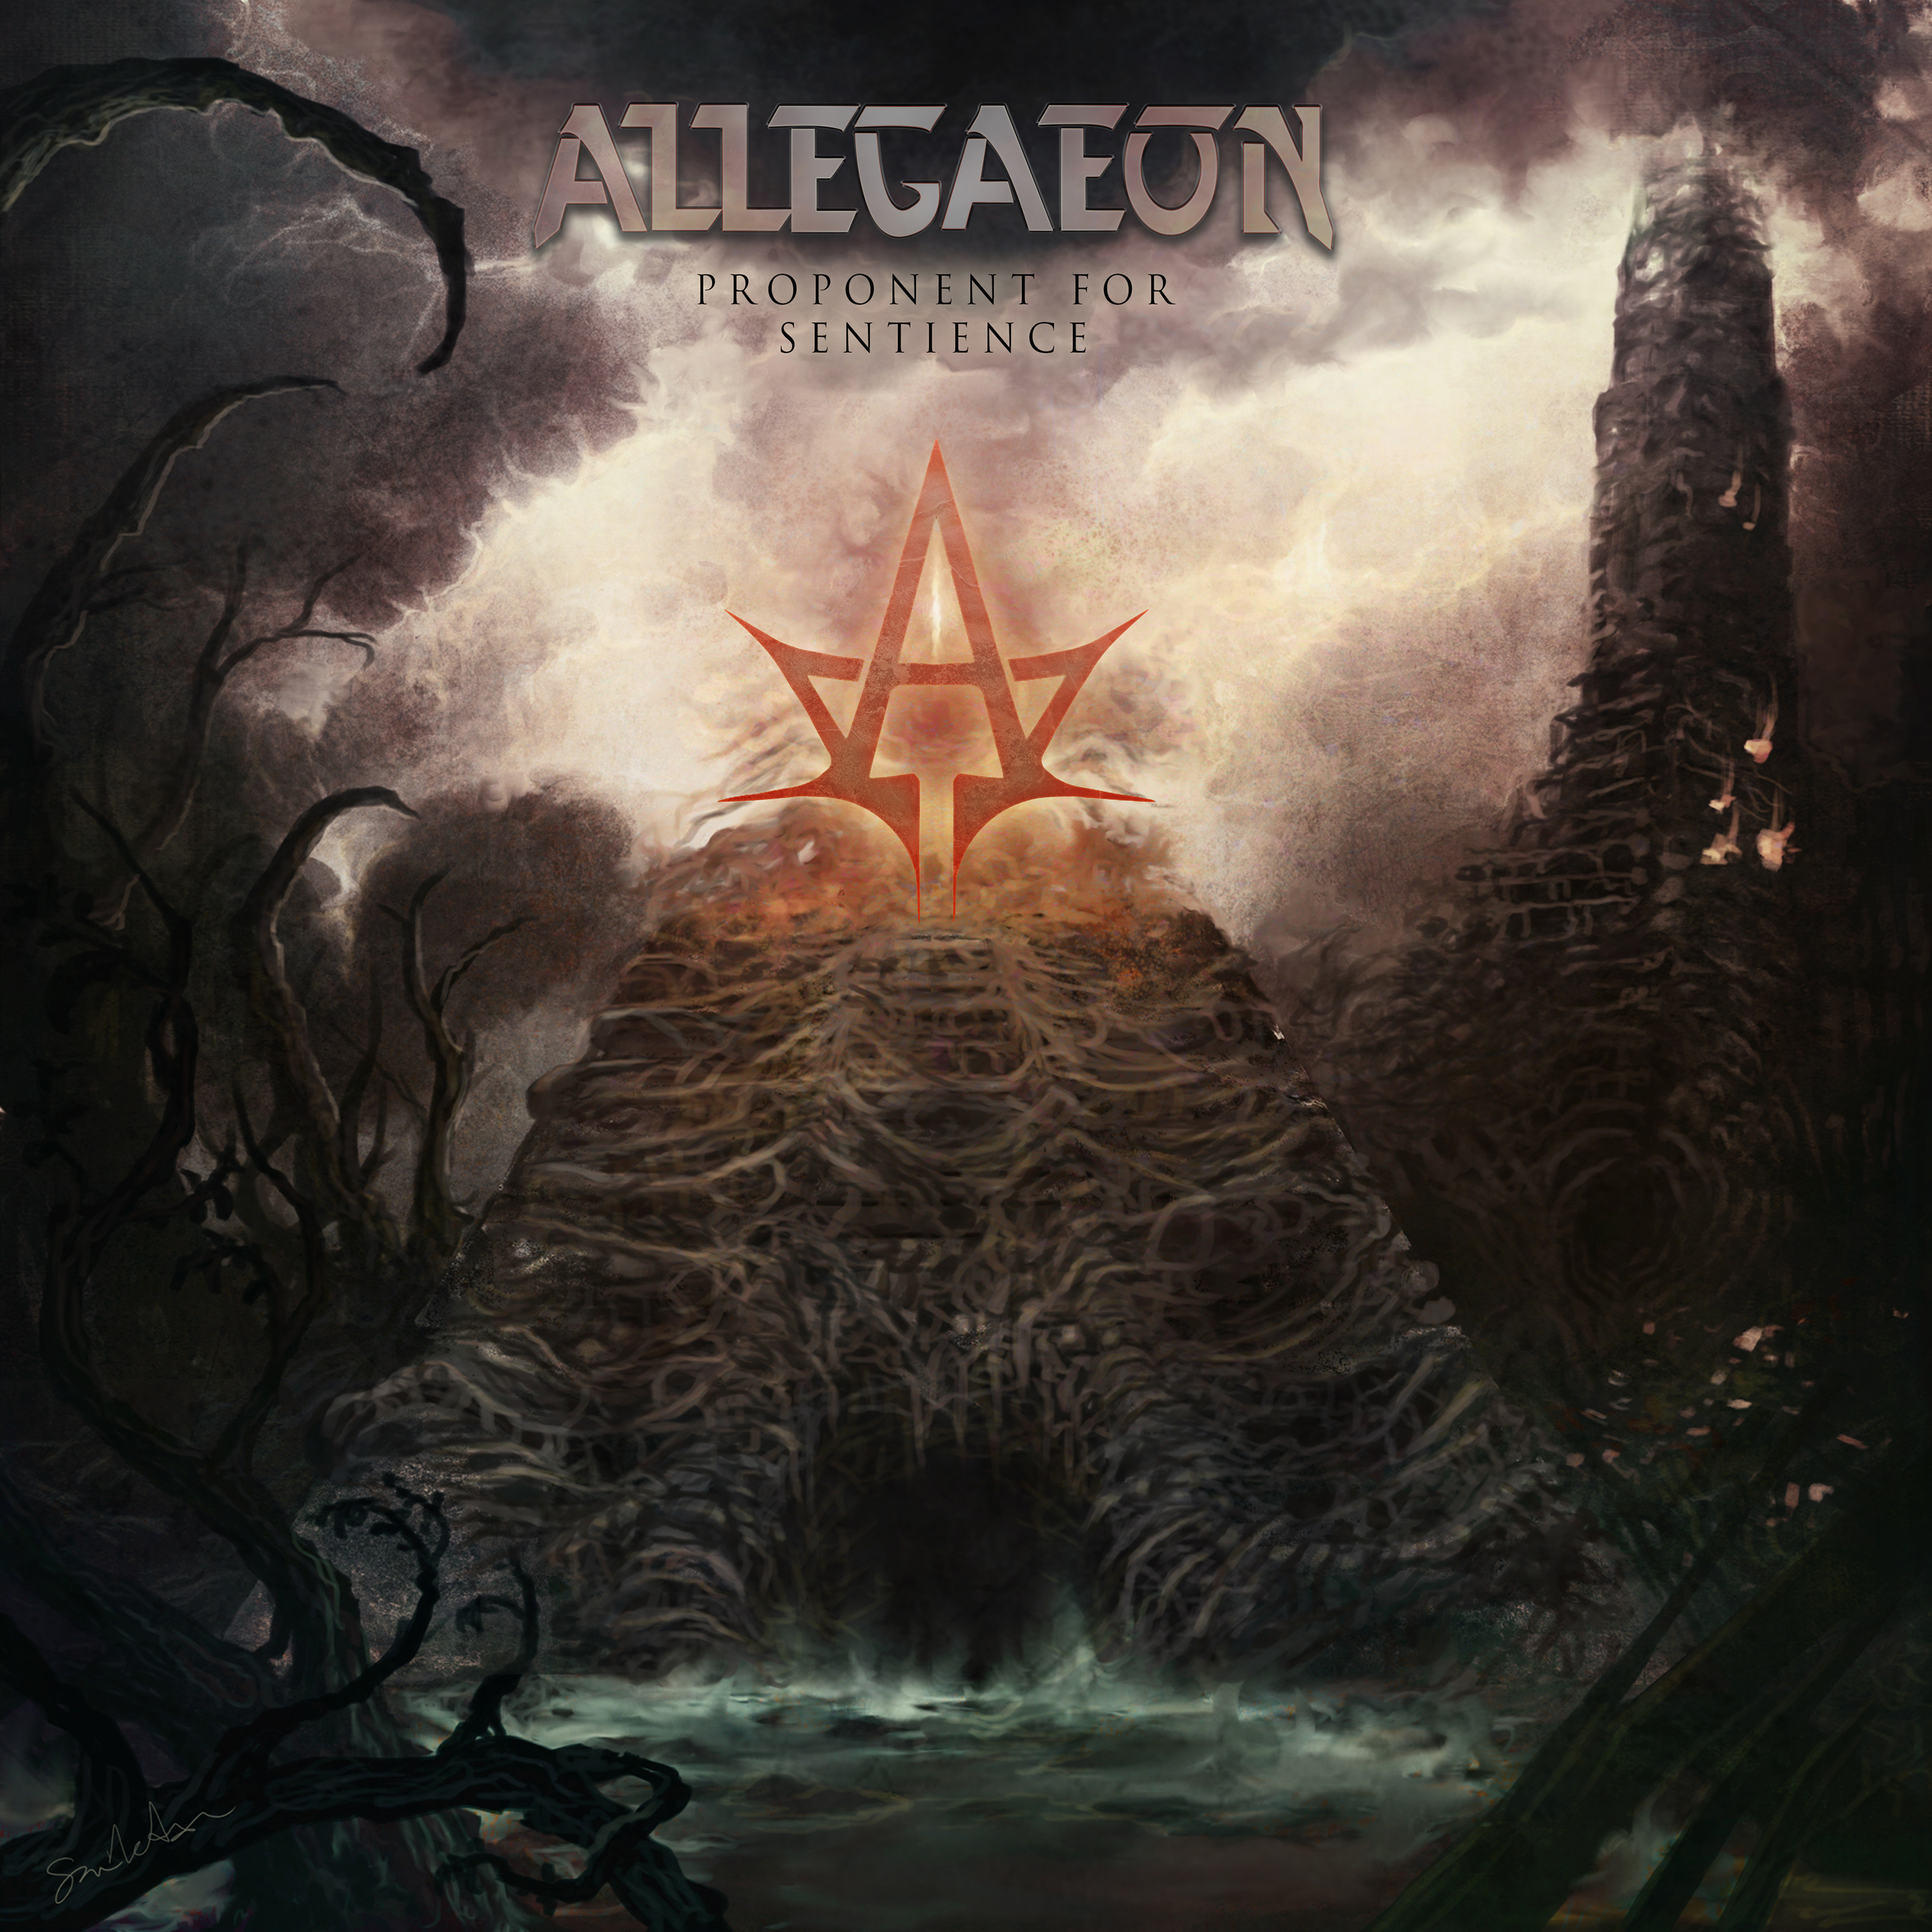 Allegaeon – Proponent for Sentience CD Review